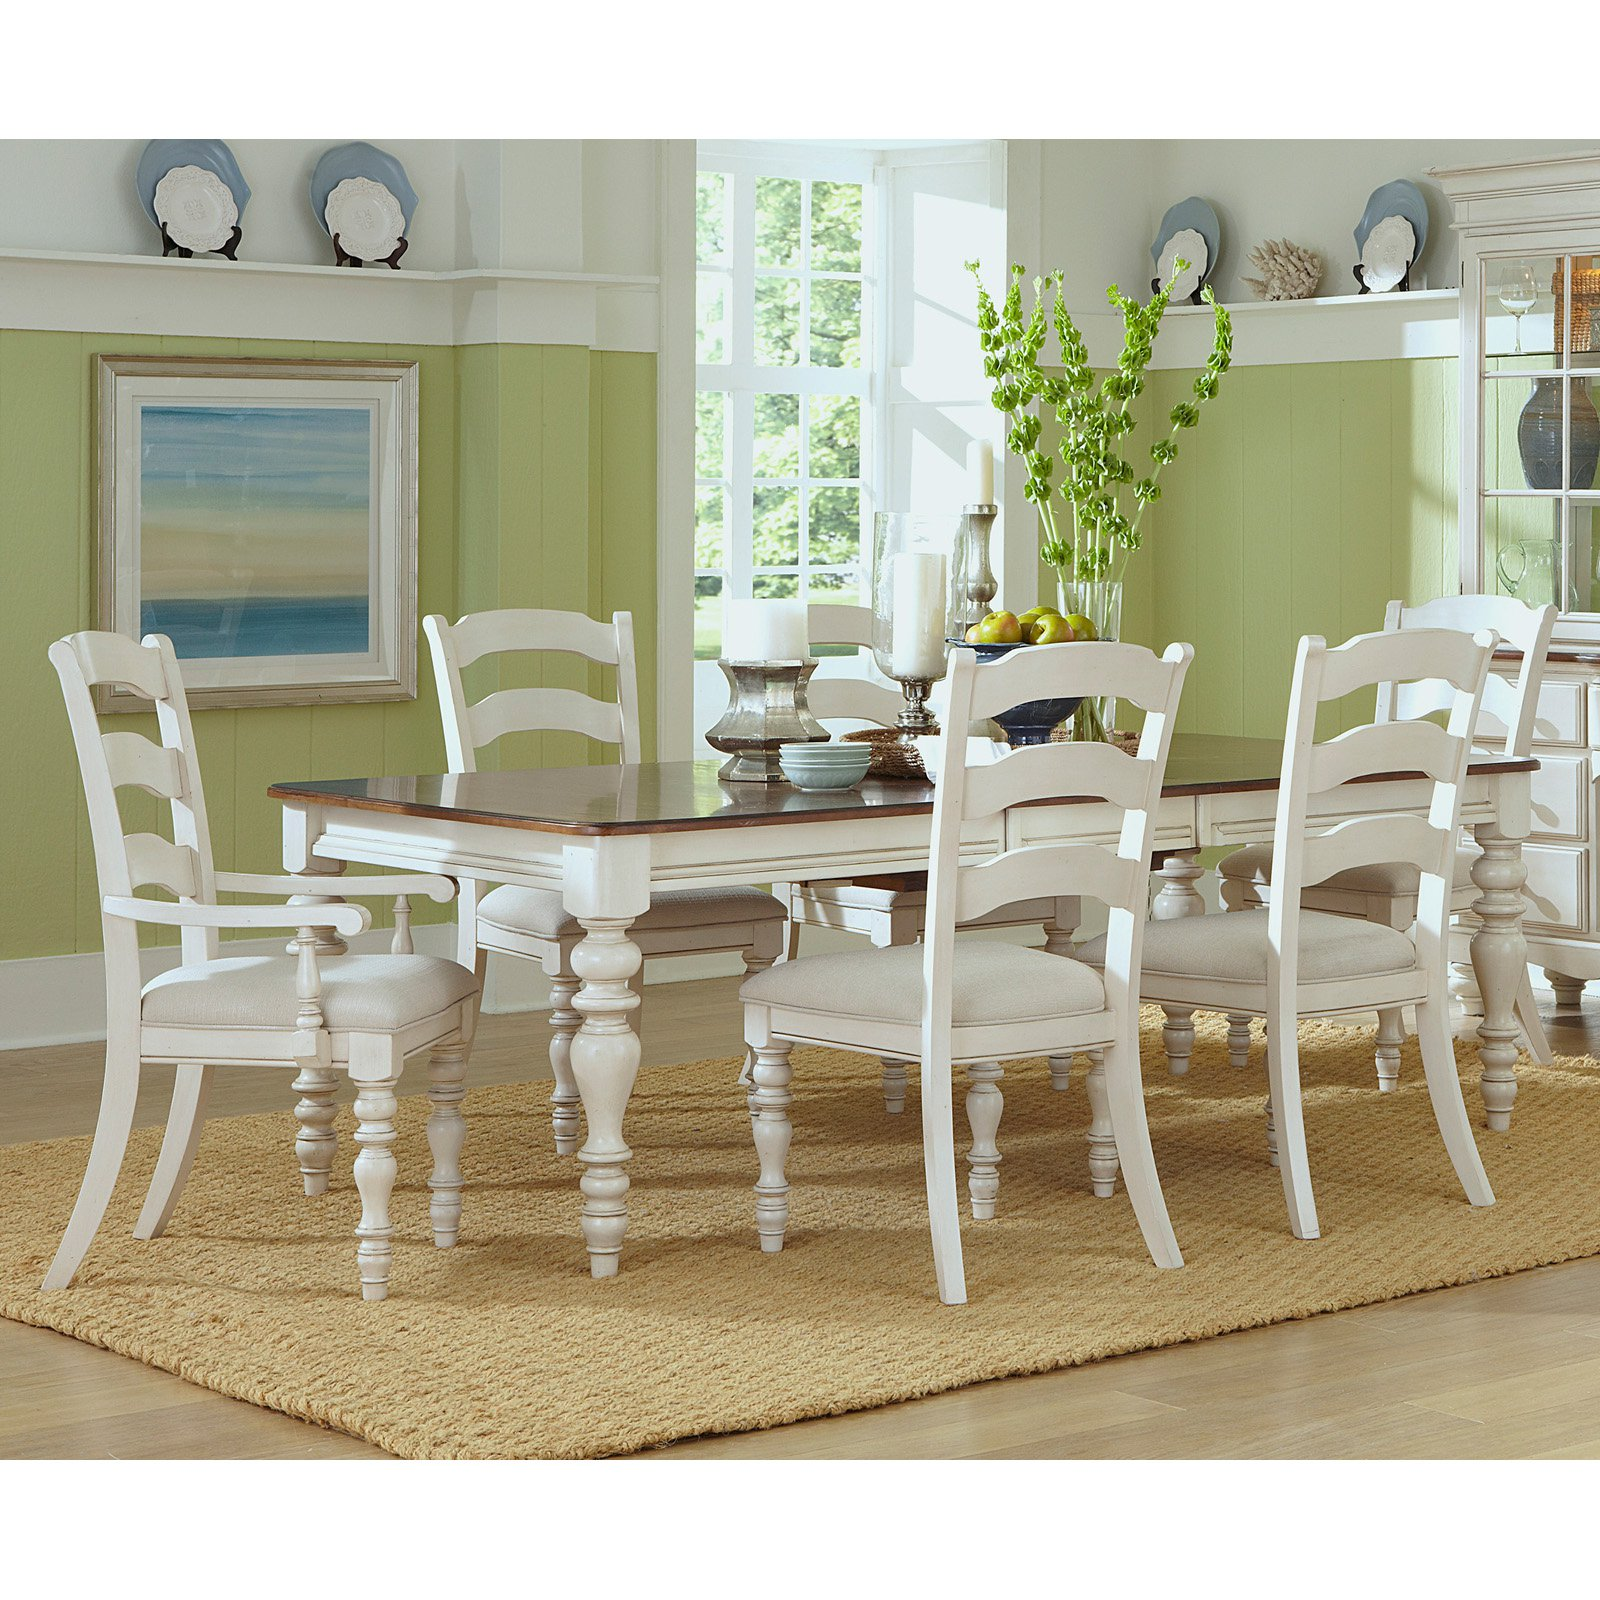 Hillsdale Pine Island 7 Piece Dining Table Set with Ladder Back